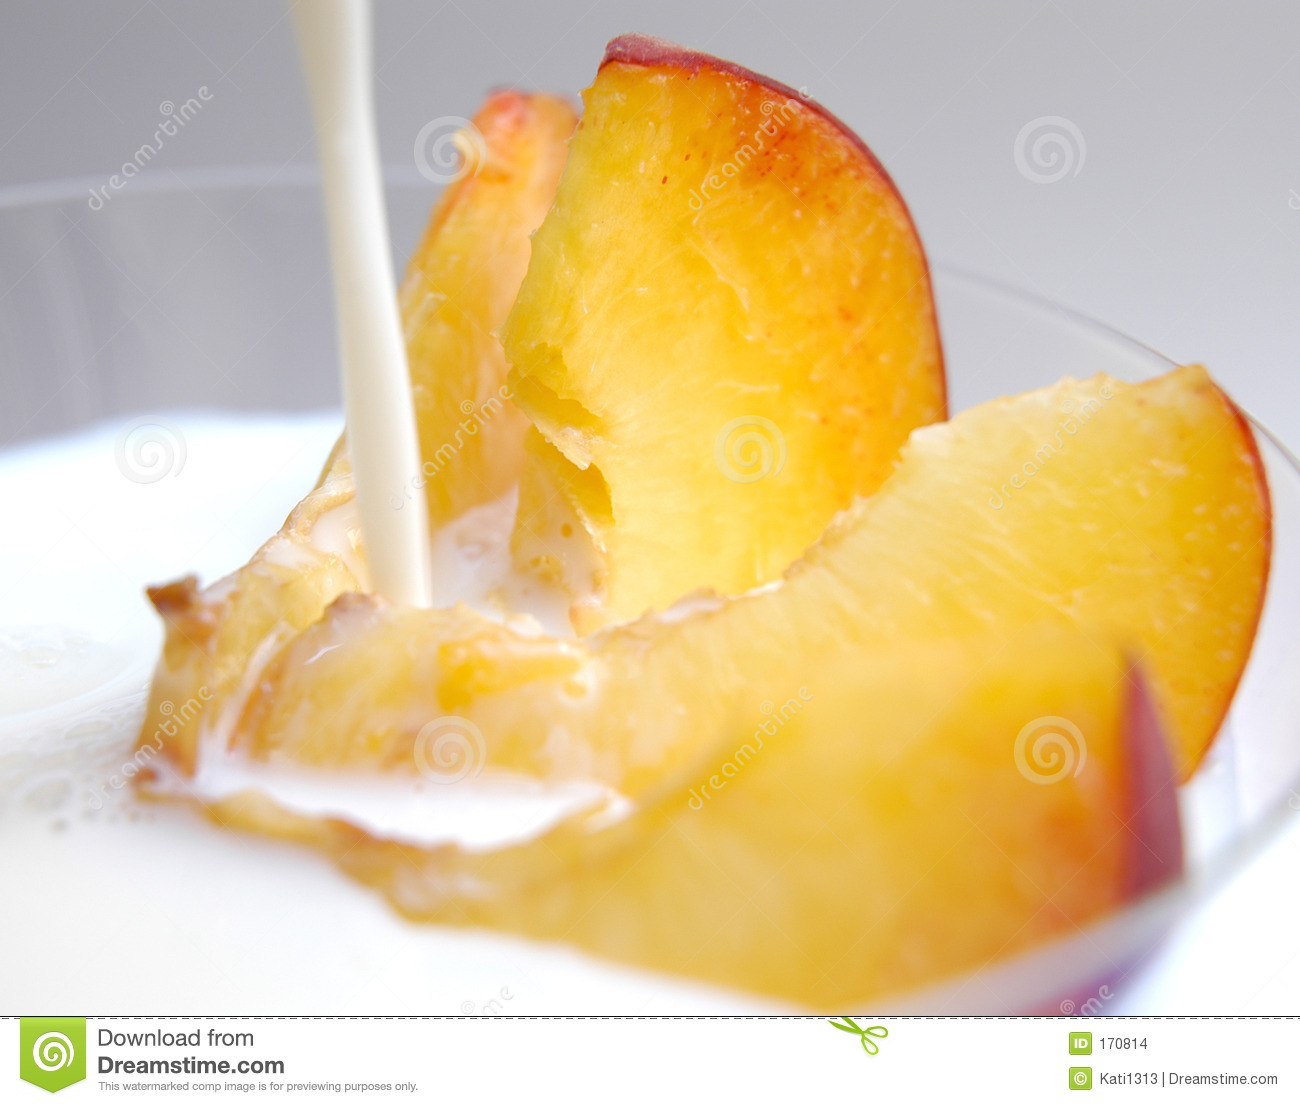 Peach slices with milk II